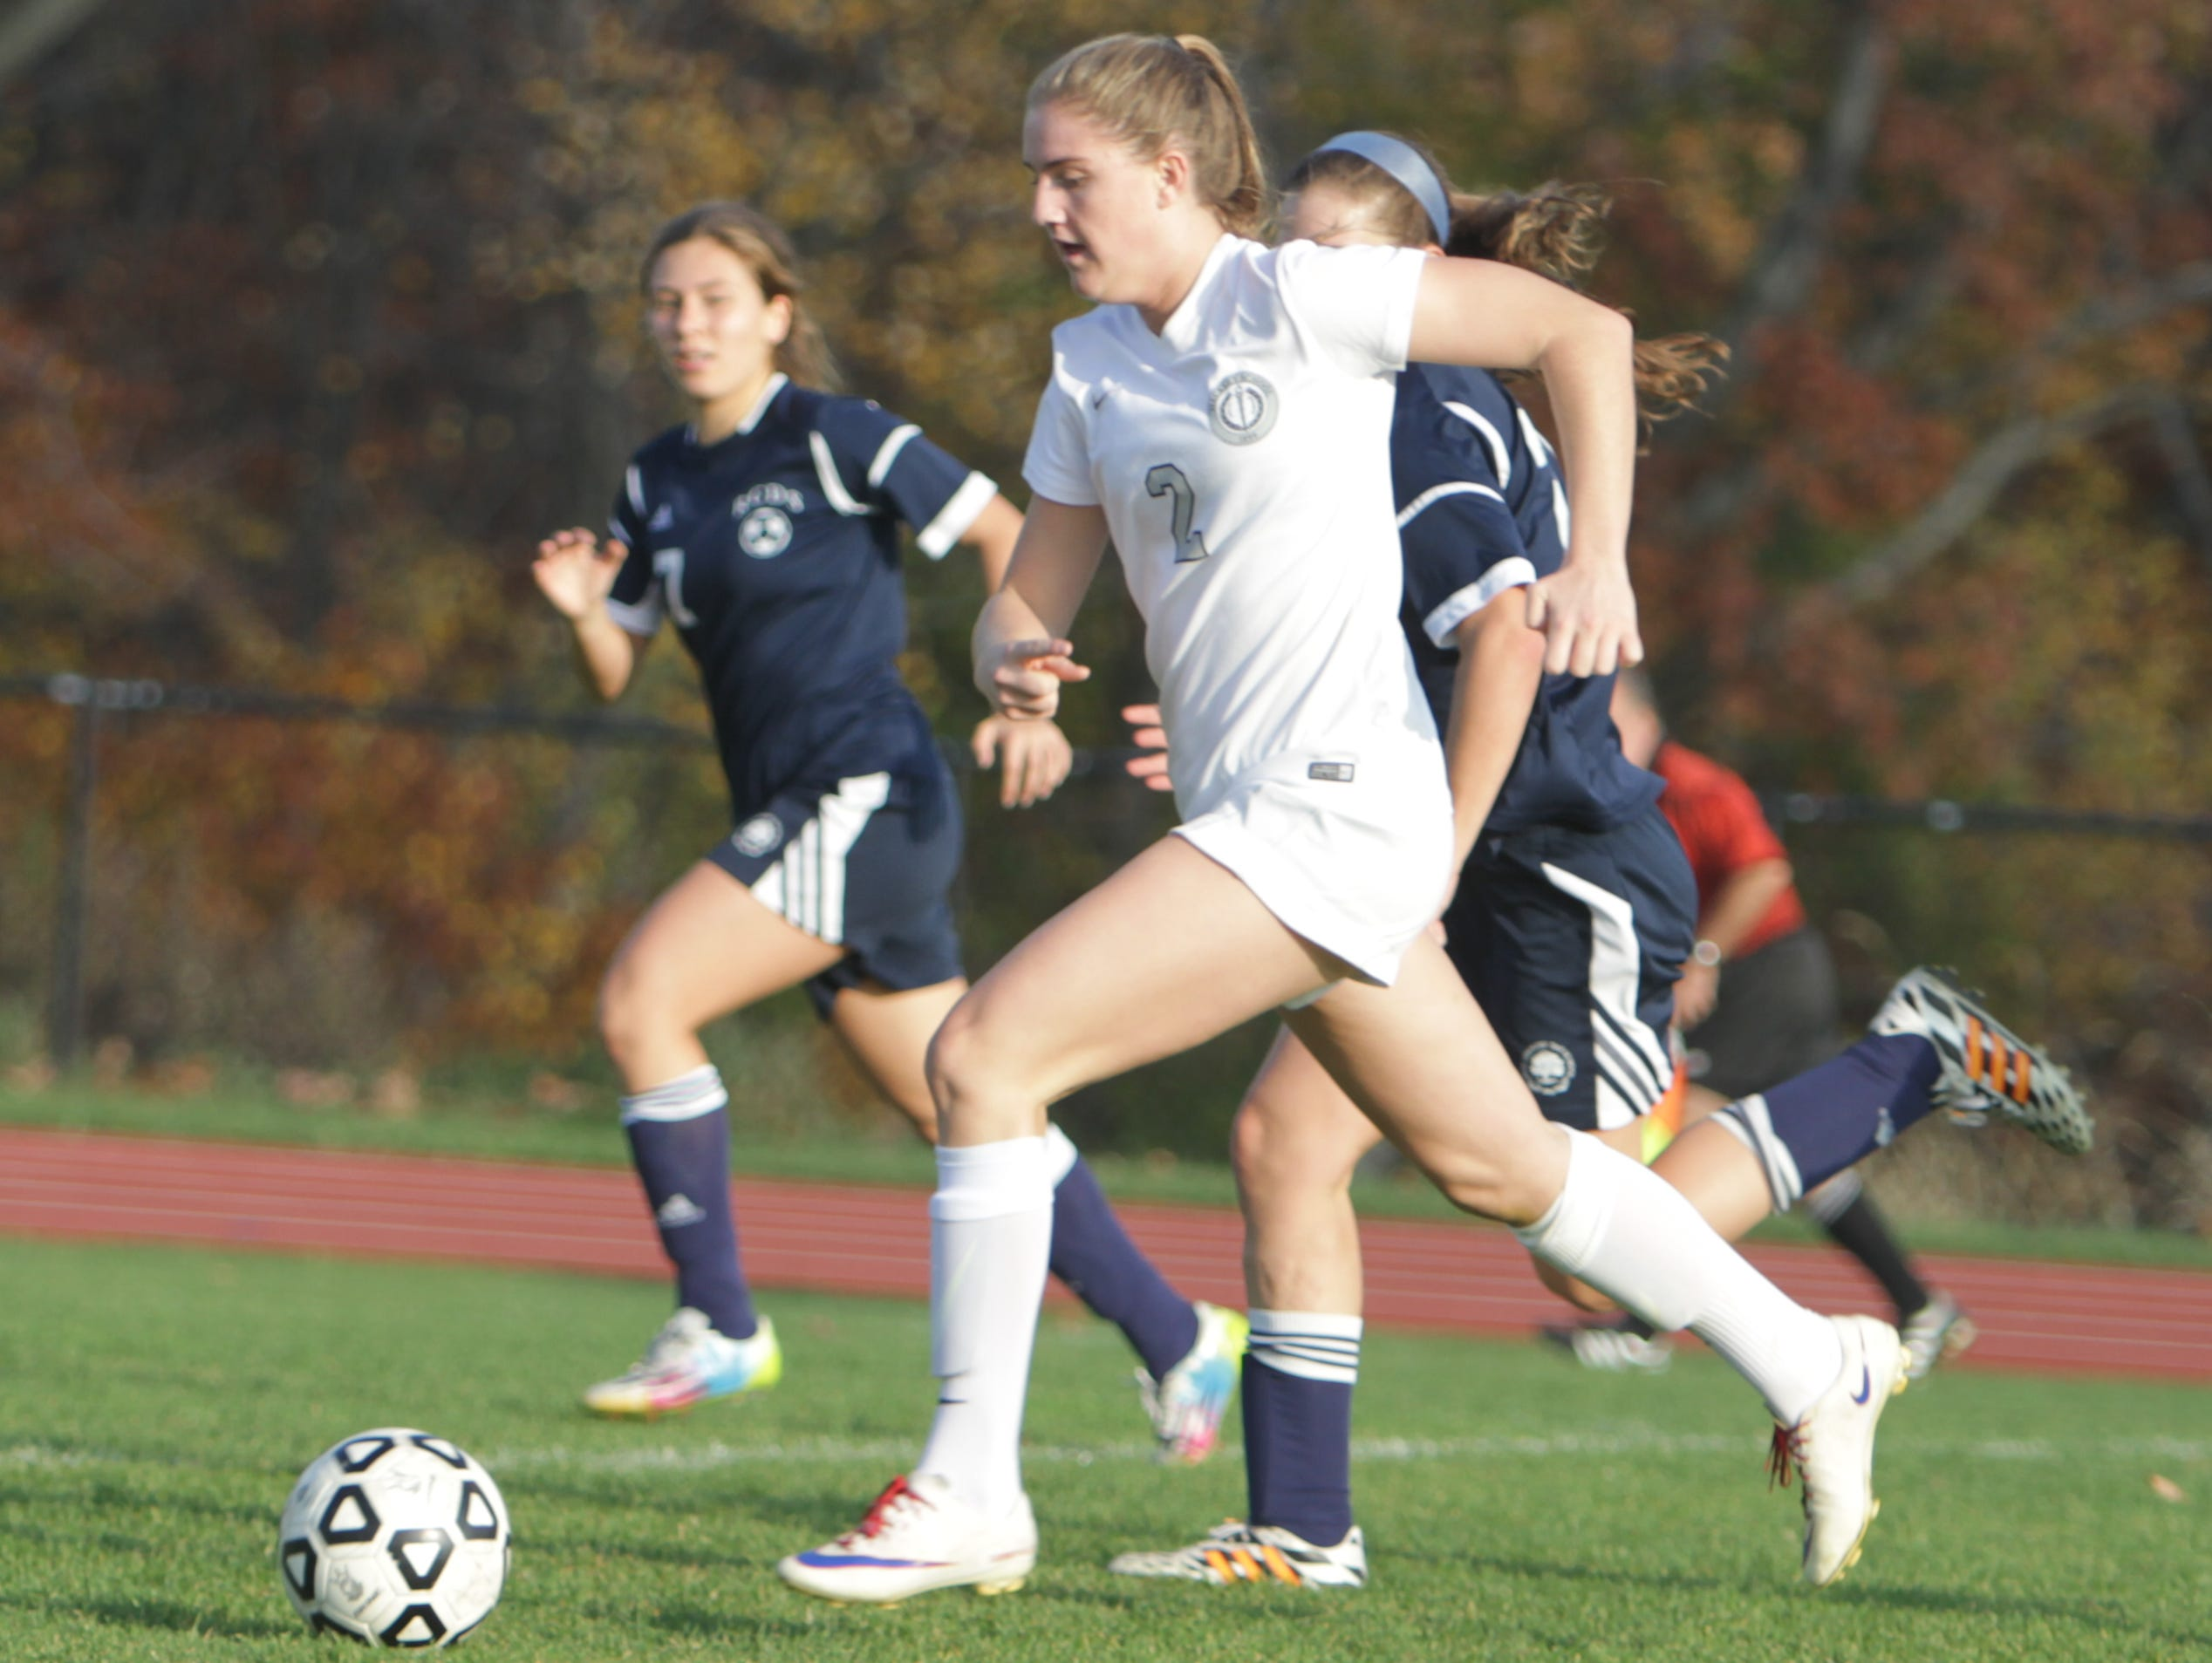 Hackley's Sammy Mueller dribbles the ball upfield during a NYSAIS semifinal match against Rye Country Day at the Hackley School on Friday, November 6th, 2015. Hackley won 3-1.